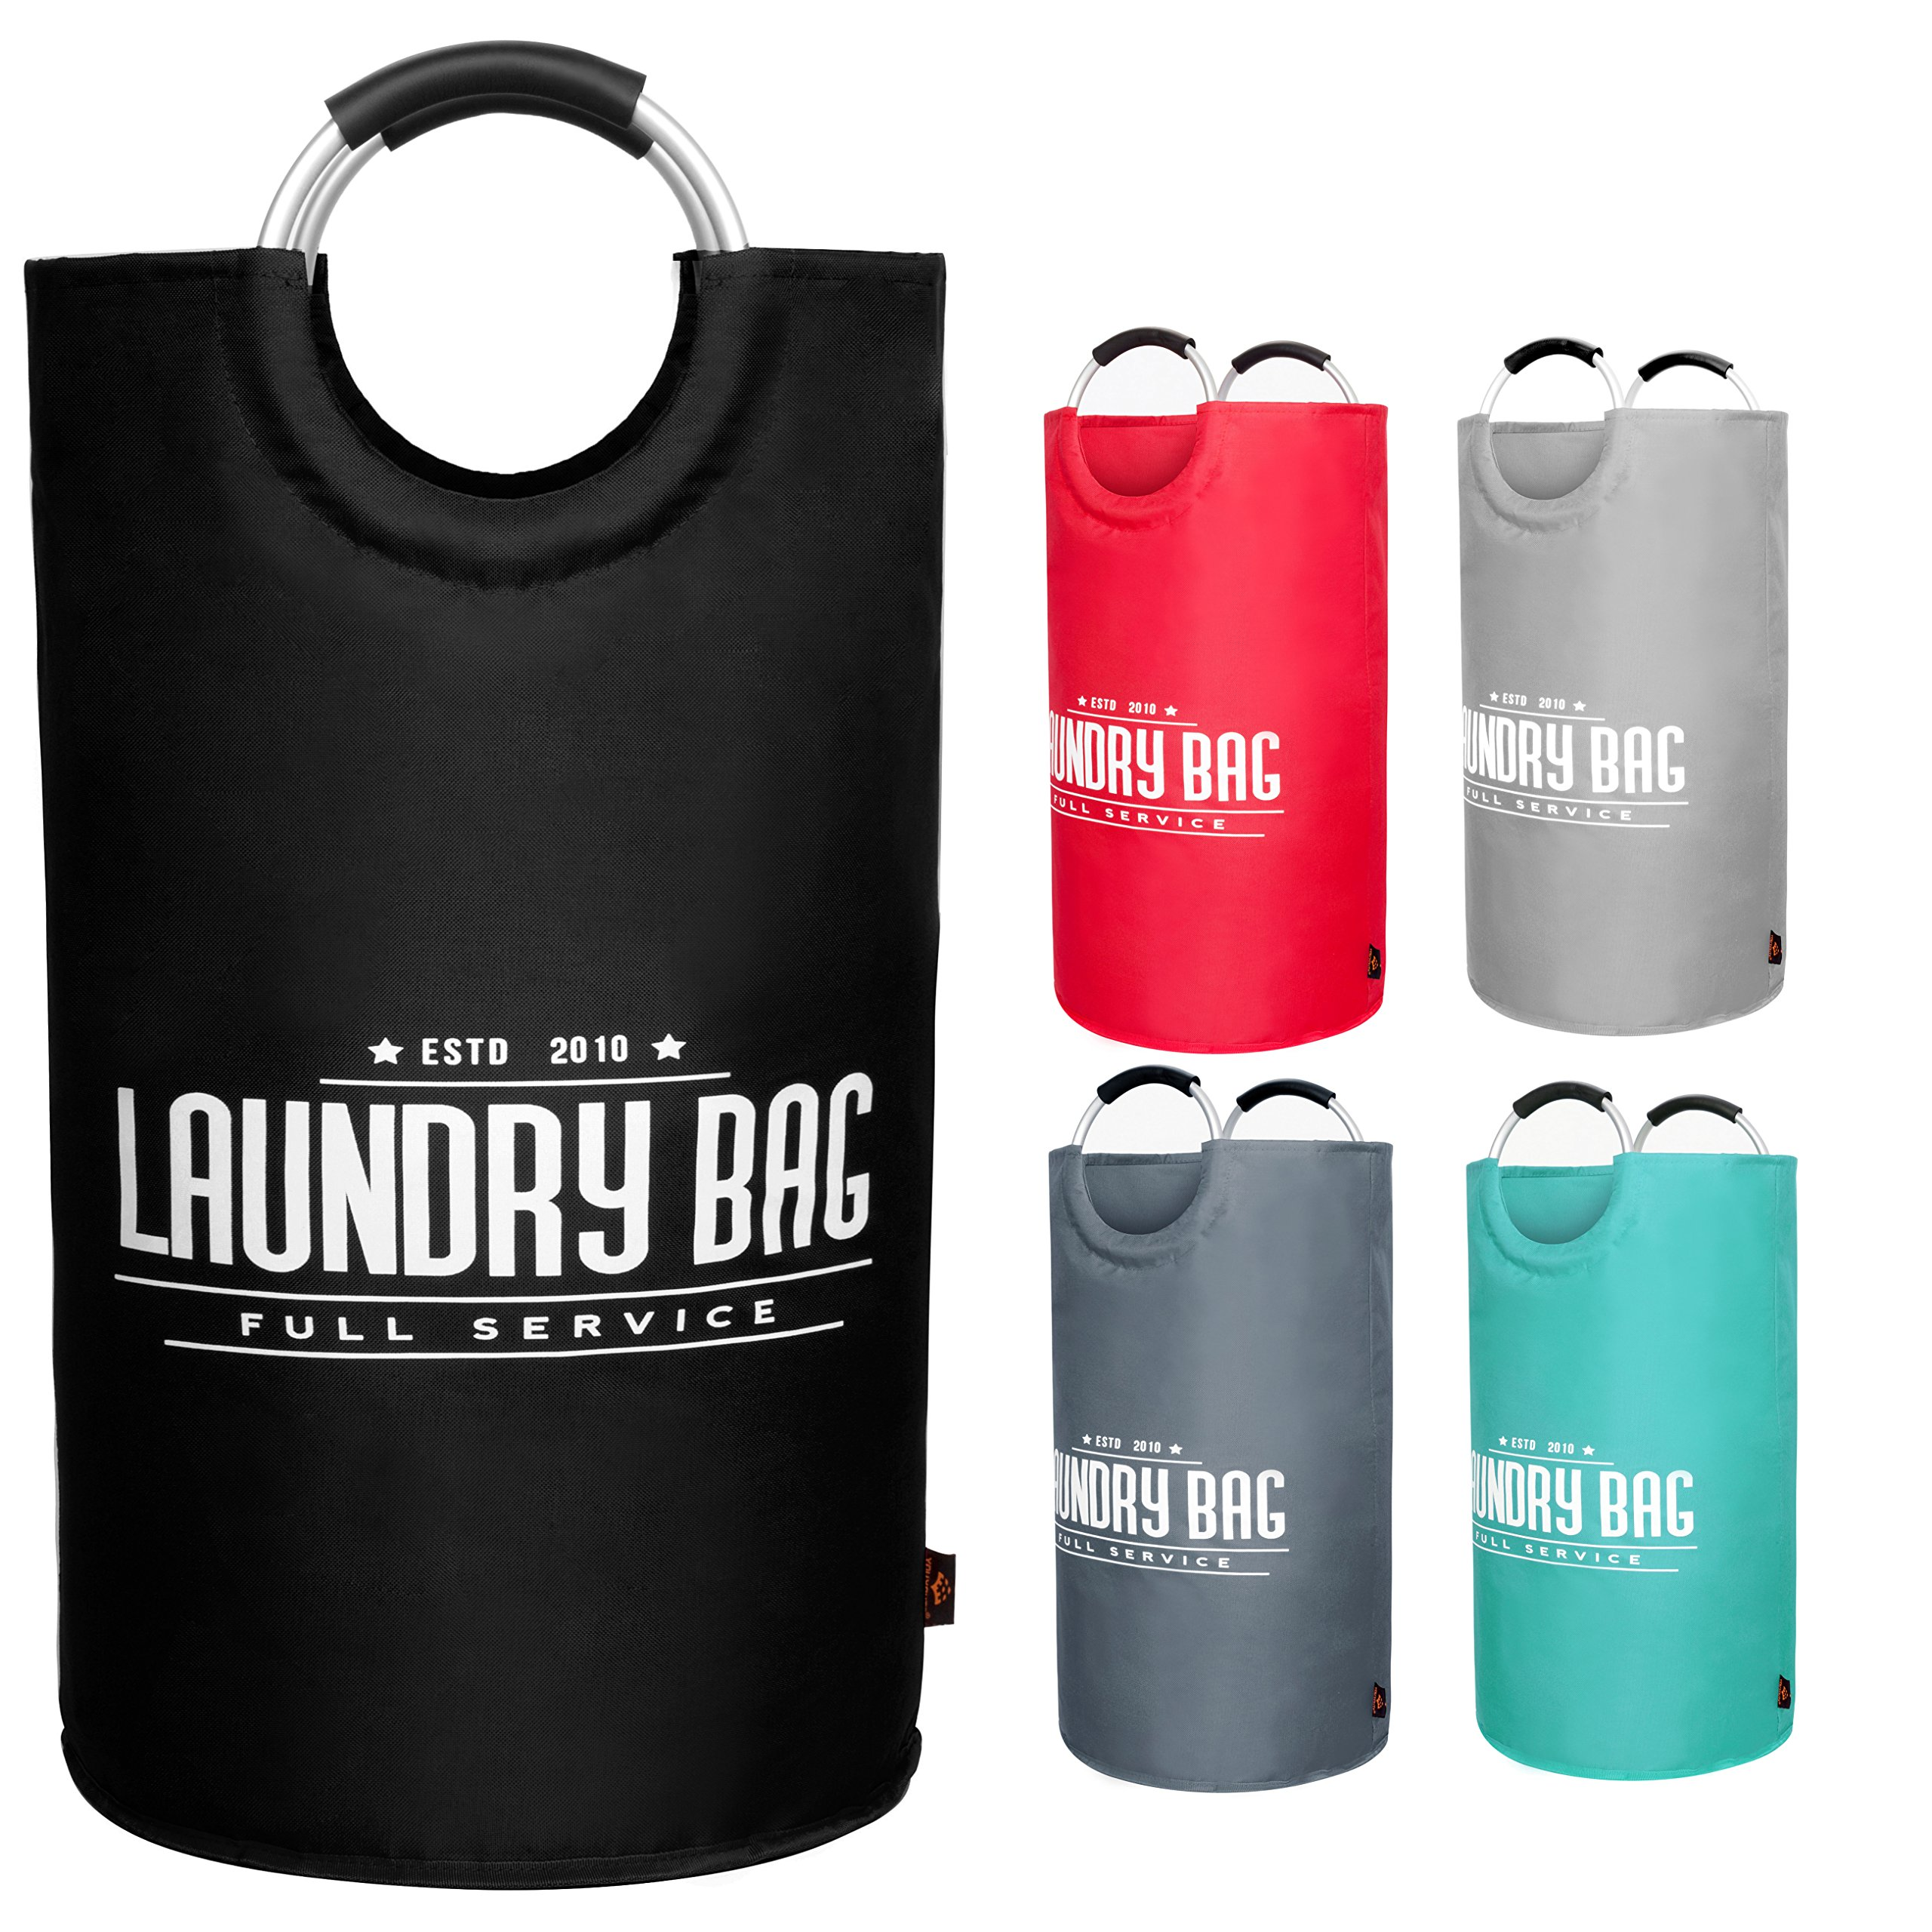 YOUYOUTE Large Laundry Basket, Oxford Fabric Collapsible Laundry Hamper, Foldable College Laundry Bags,Waterproof Portable Storage Bag with Carry Aluminium Handles for Dirty Clothes, Toys (Black)